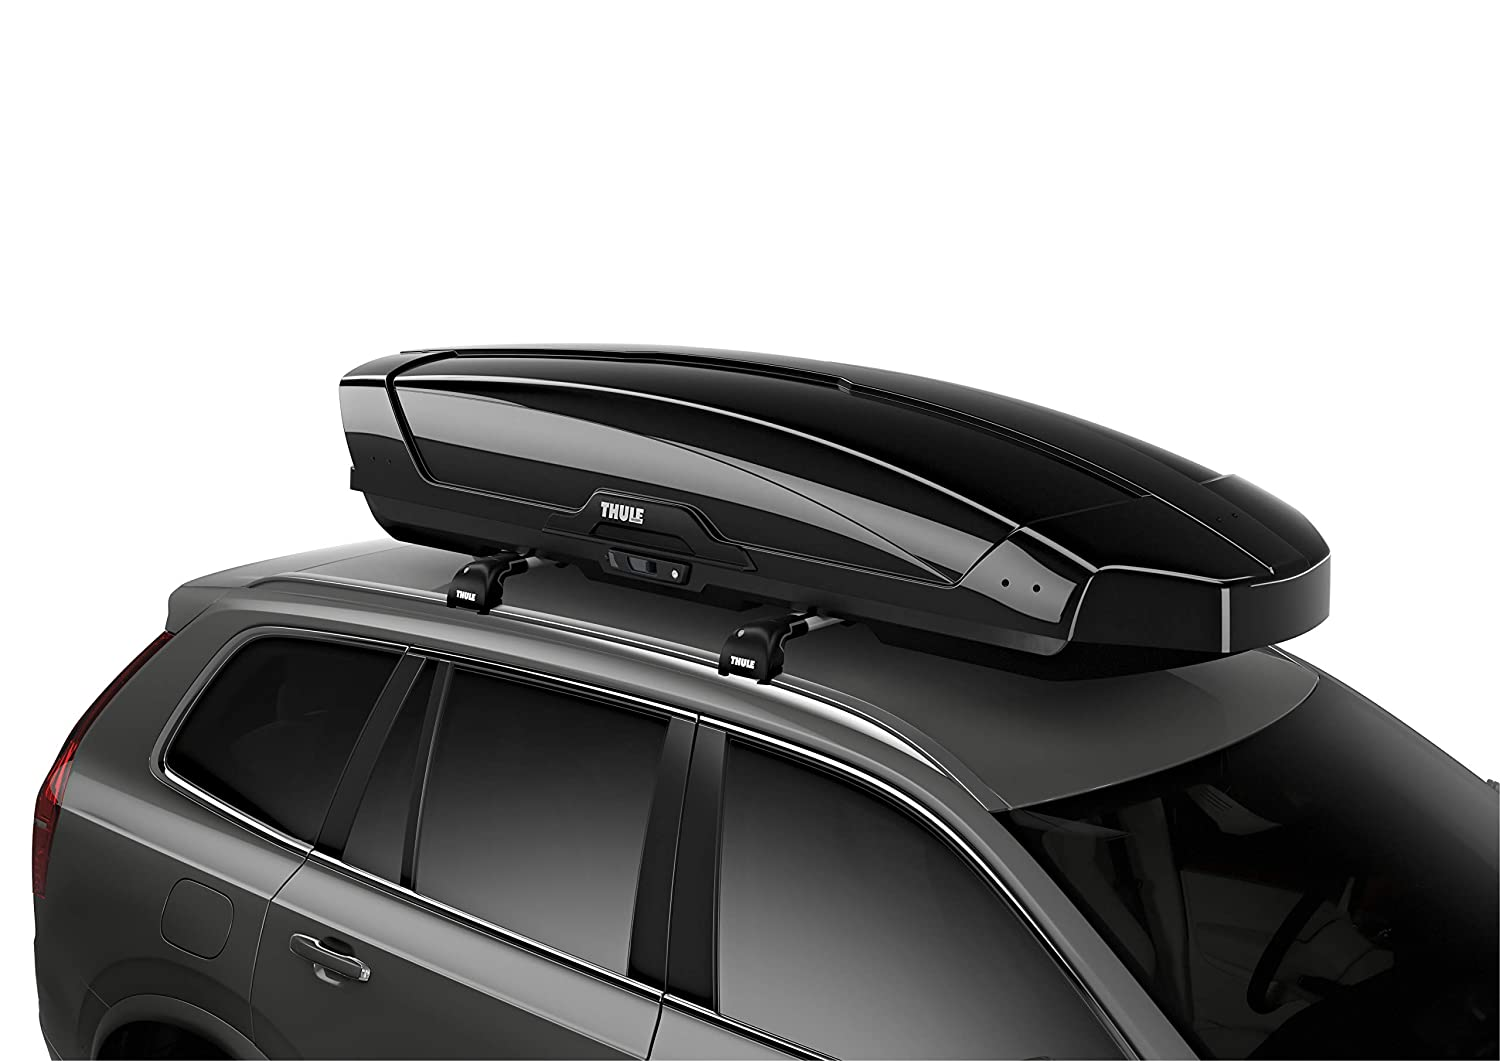 Thule Motion XT Rooftop Cargo Carrier